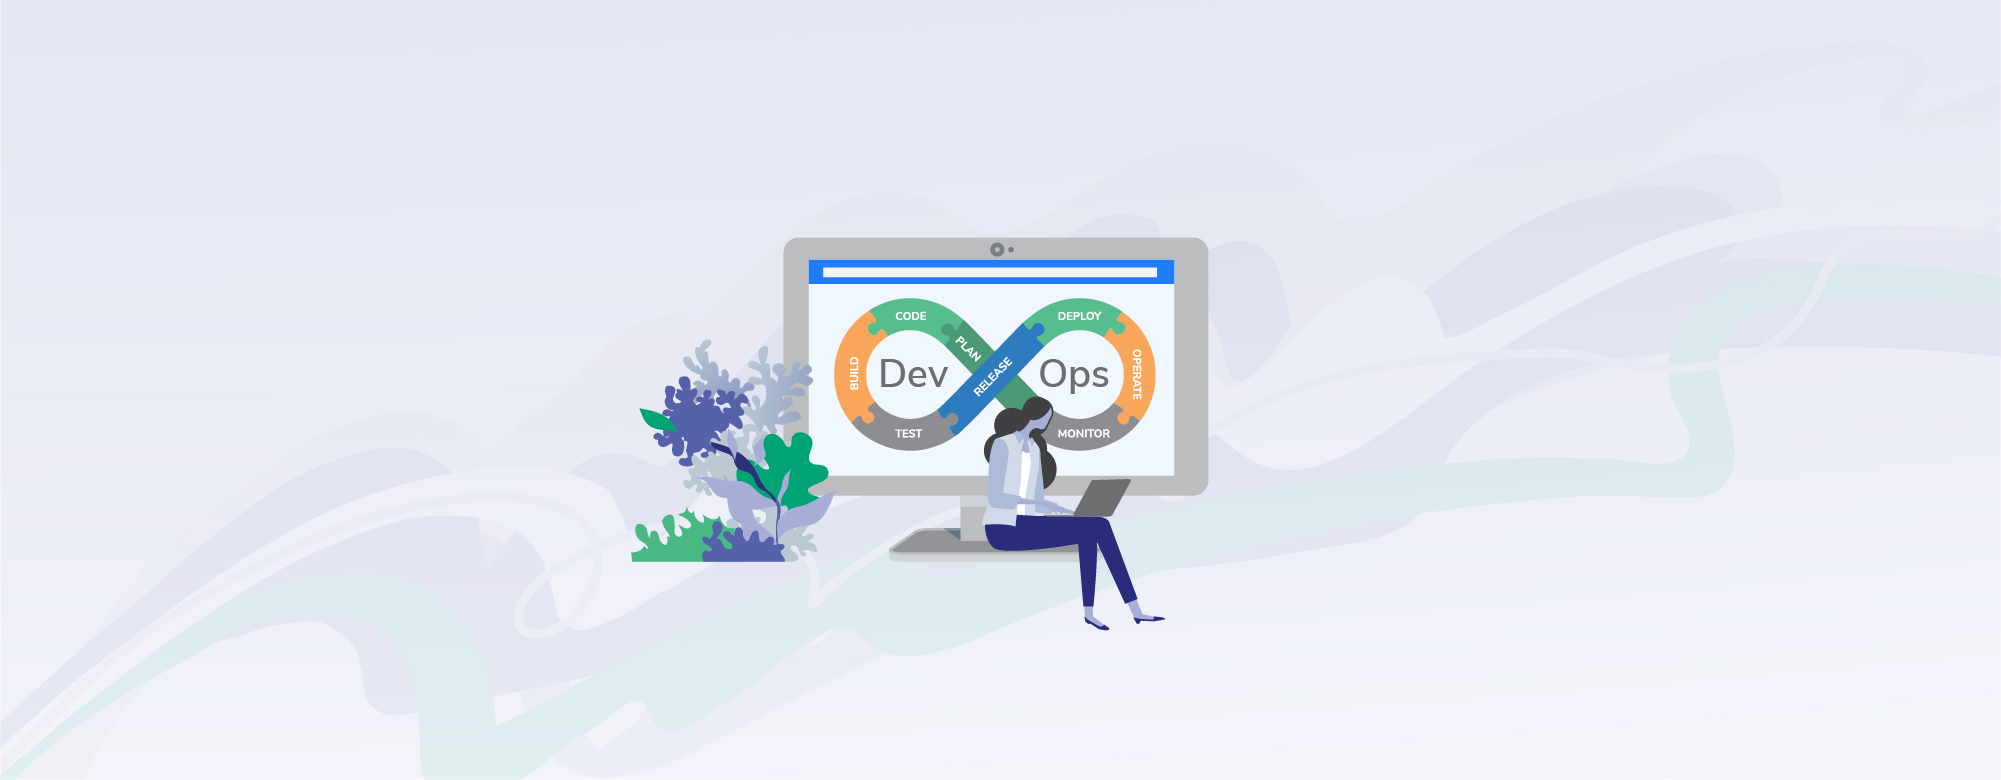 DevOps Best Practices that connect you to your customer